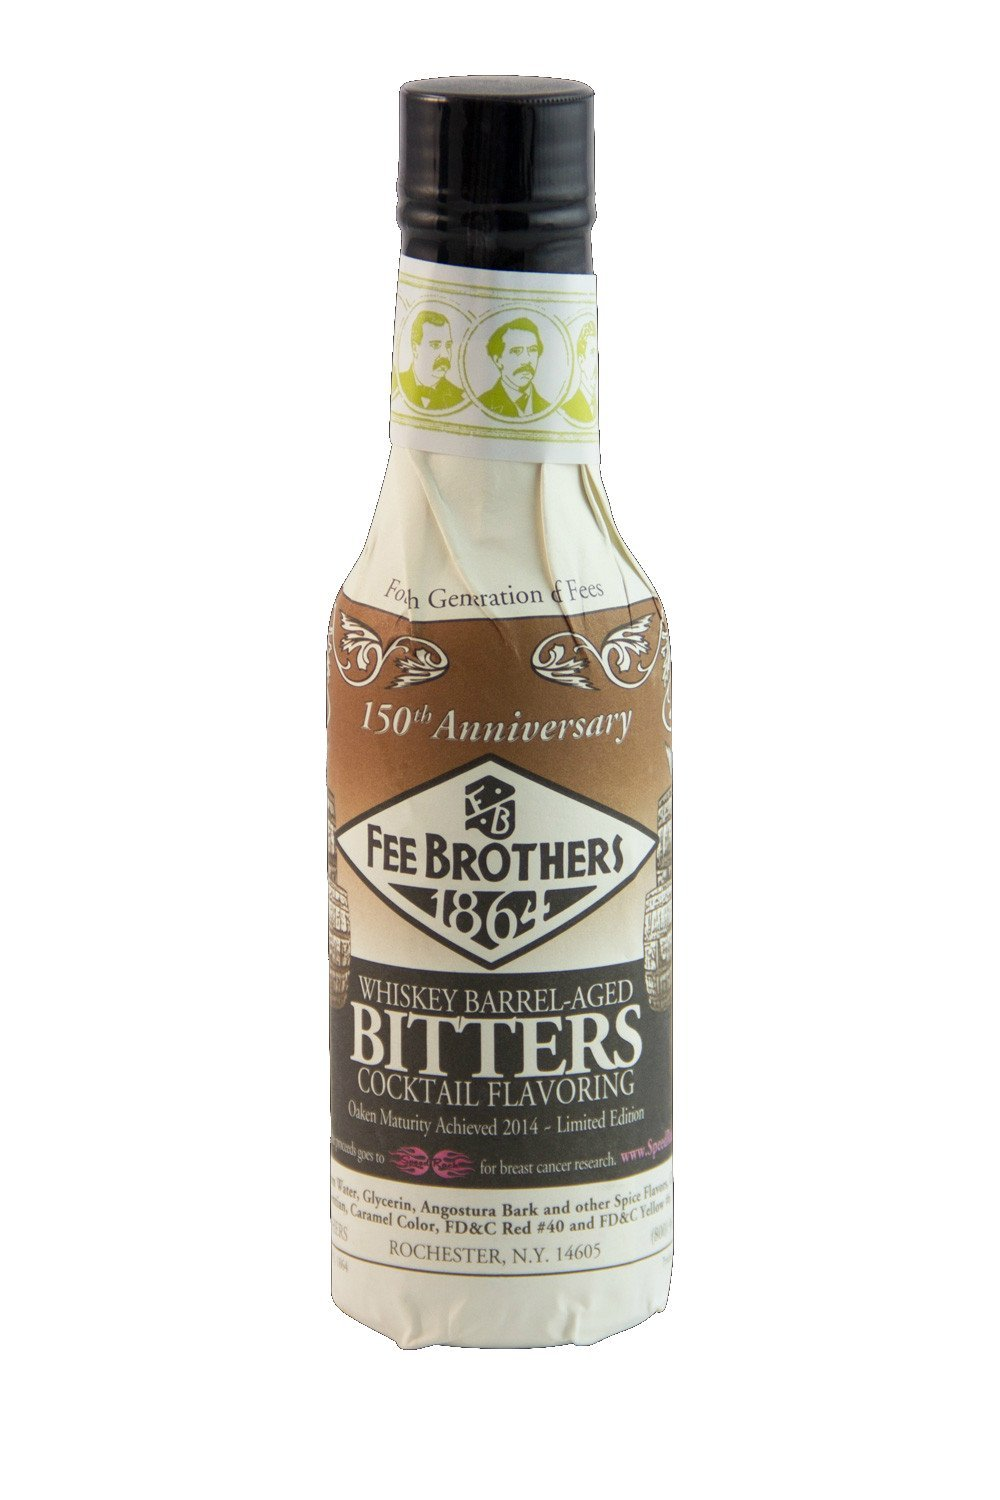 Fee Brothers Whiskey Barrel-Aged Bitters 5oz